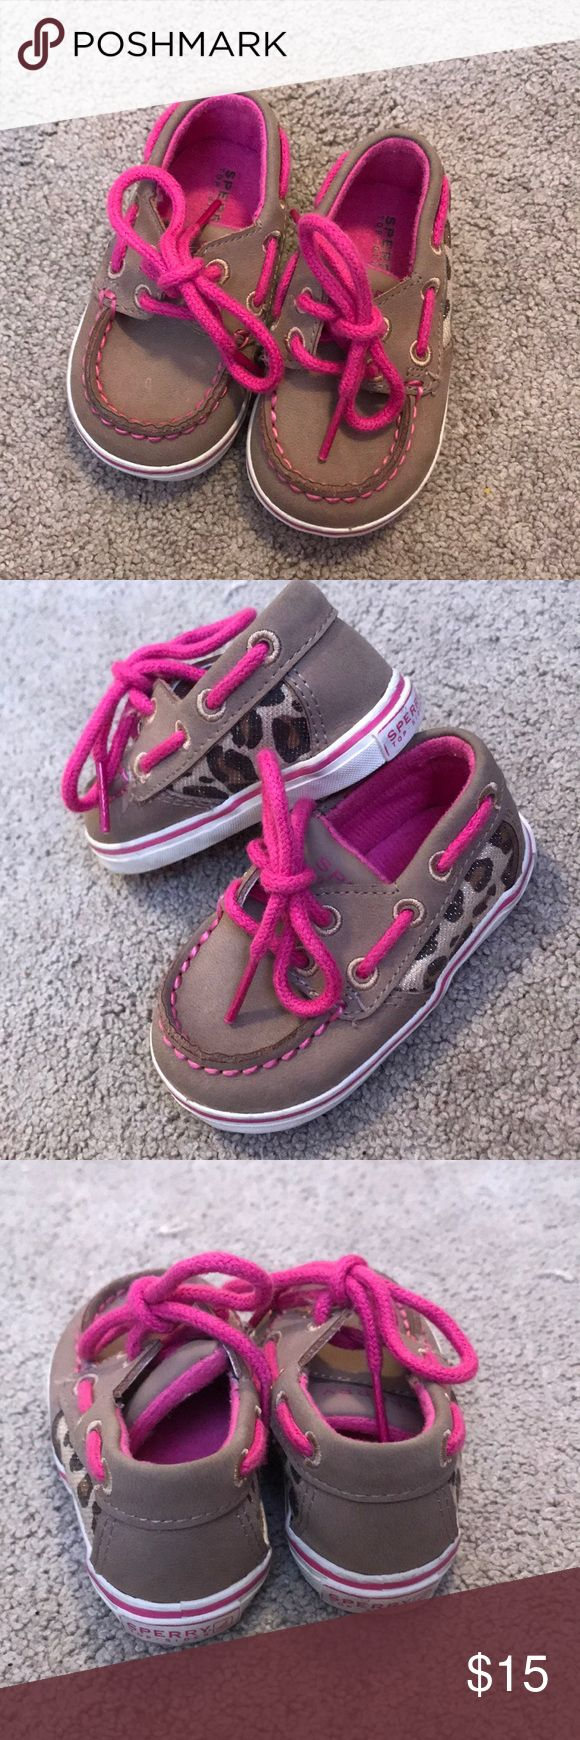 Infant size 2 Pink and Leopard Sperry's Size 2, Great Condition. Sperry Top-Sider Shoes Moccasins